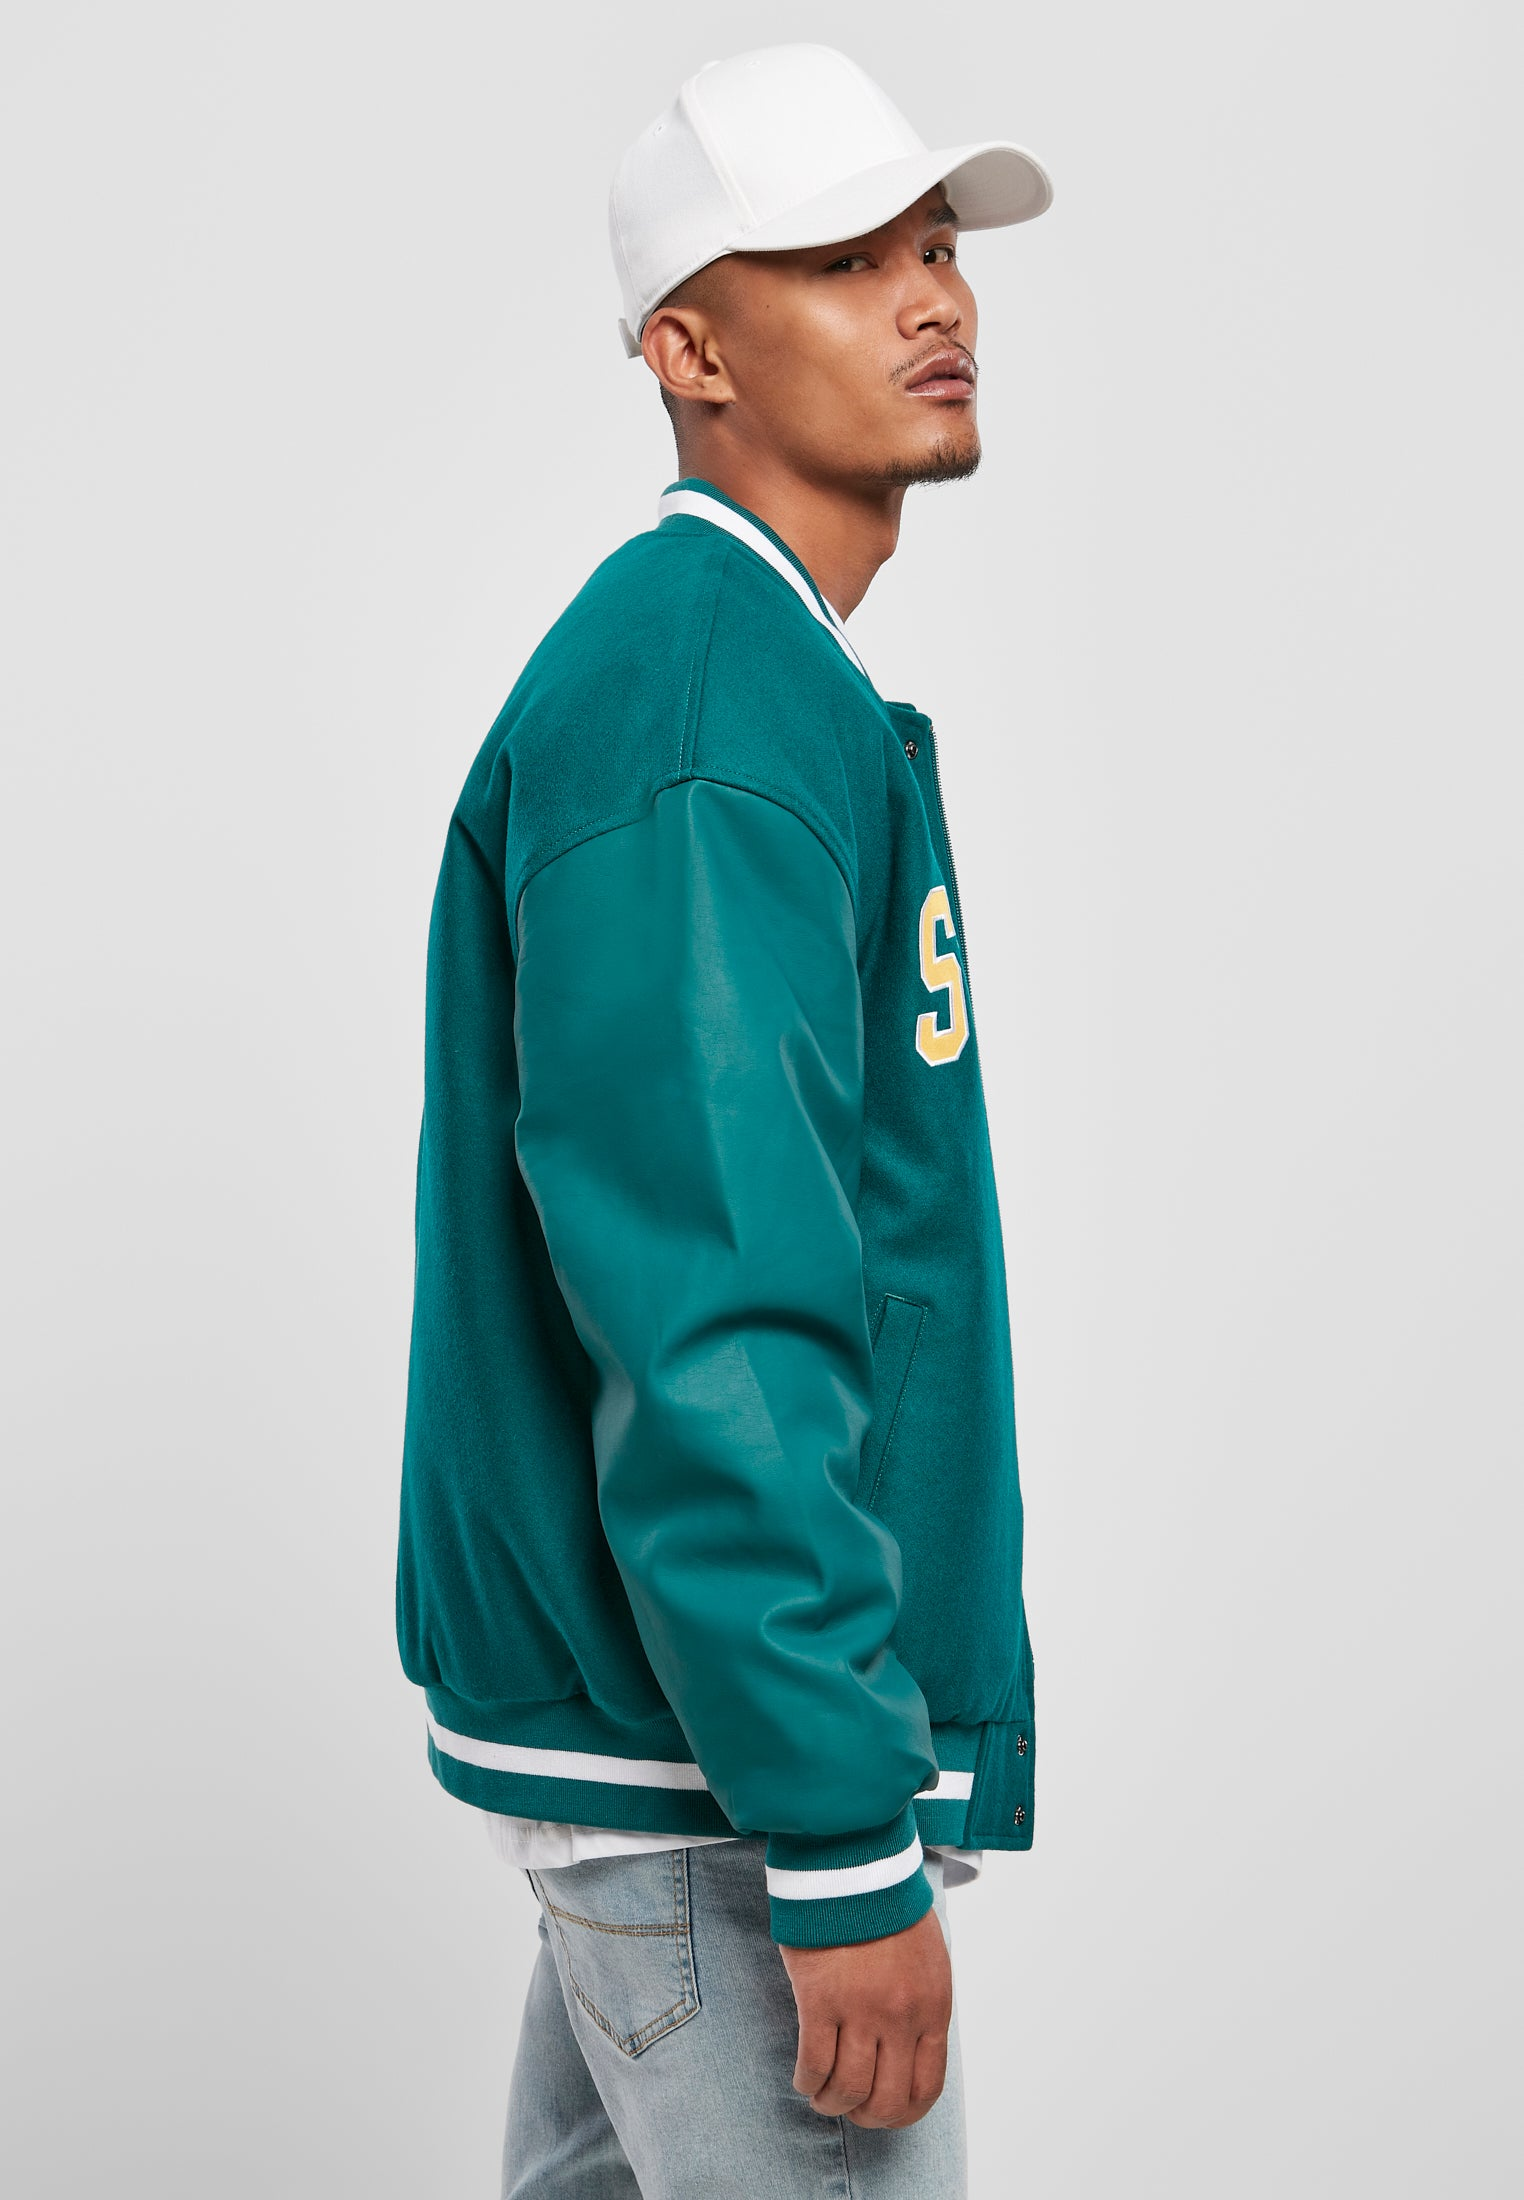 Starter Team Jacket (Retro groen)